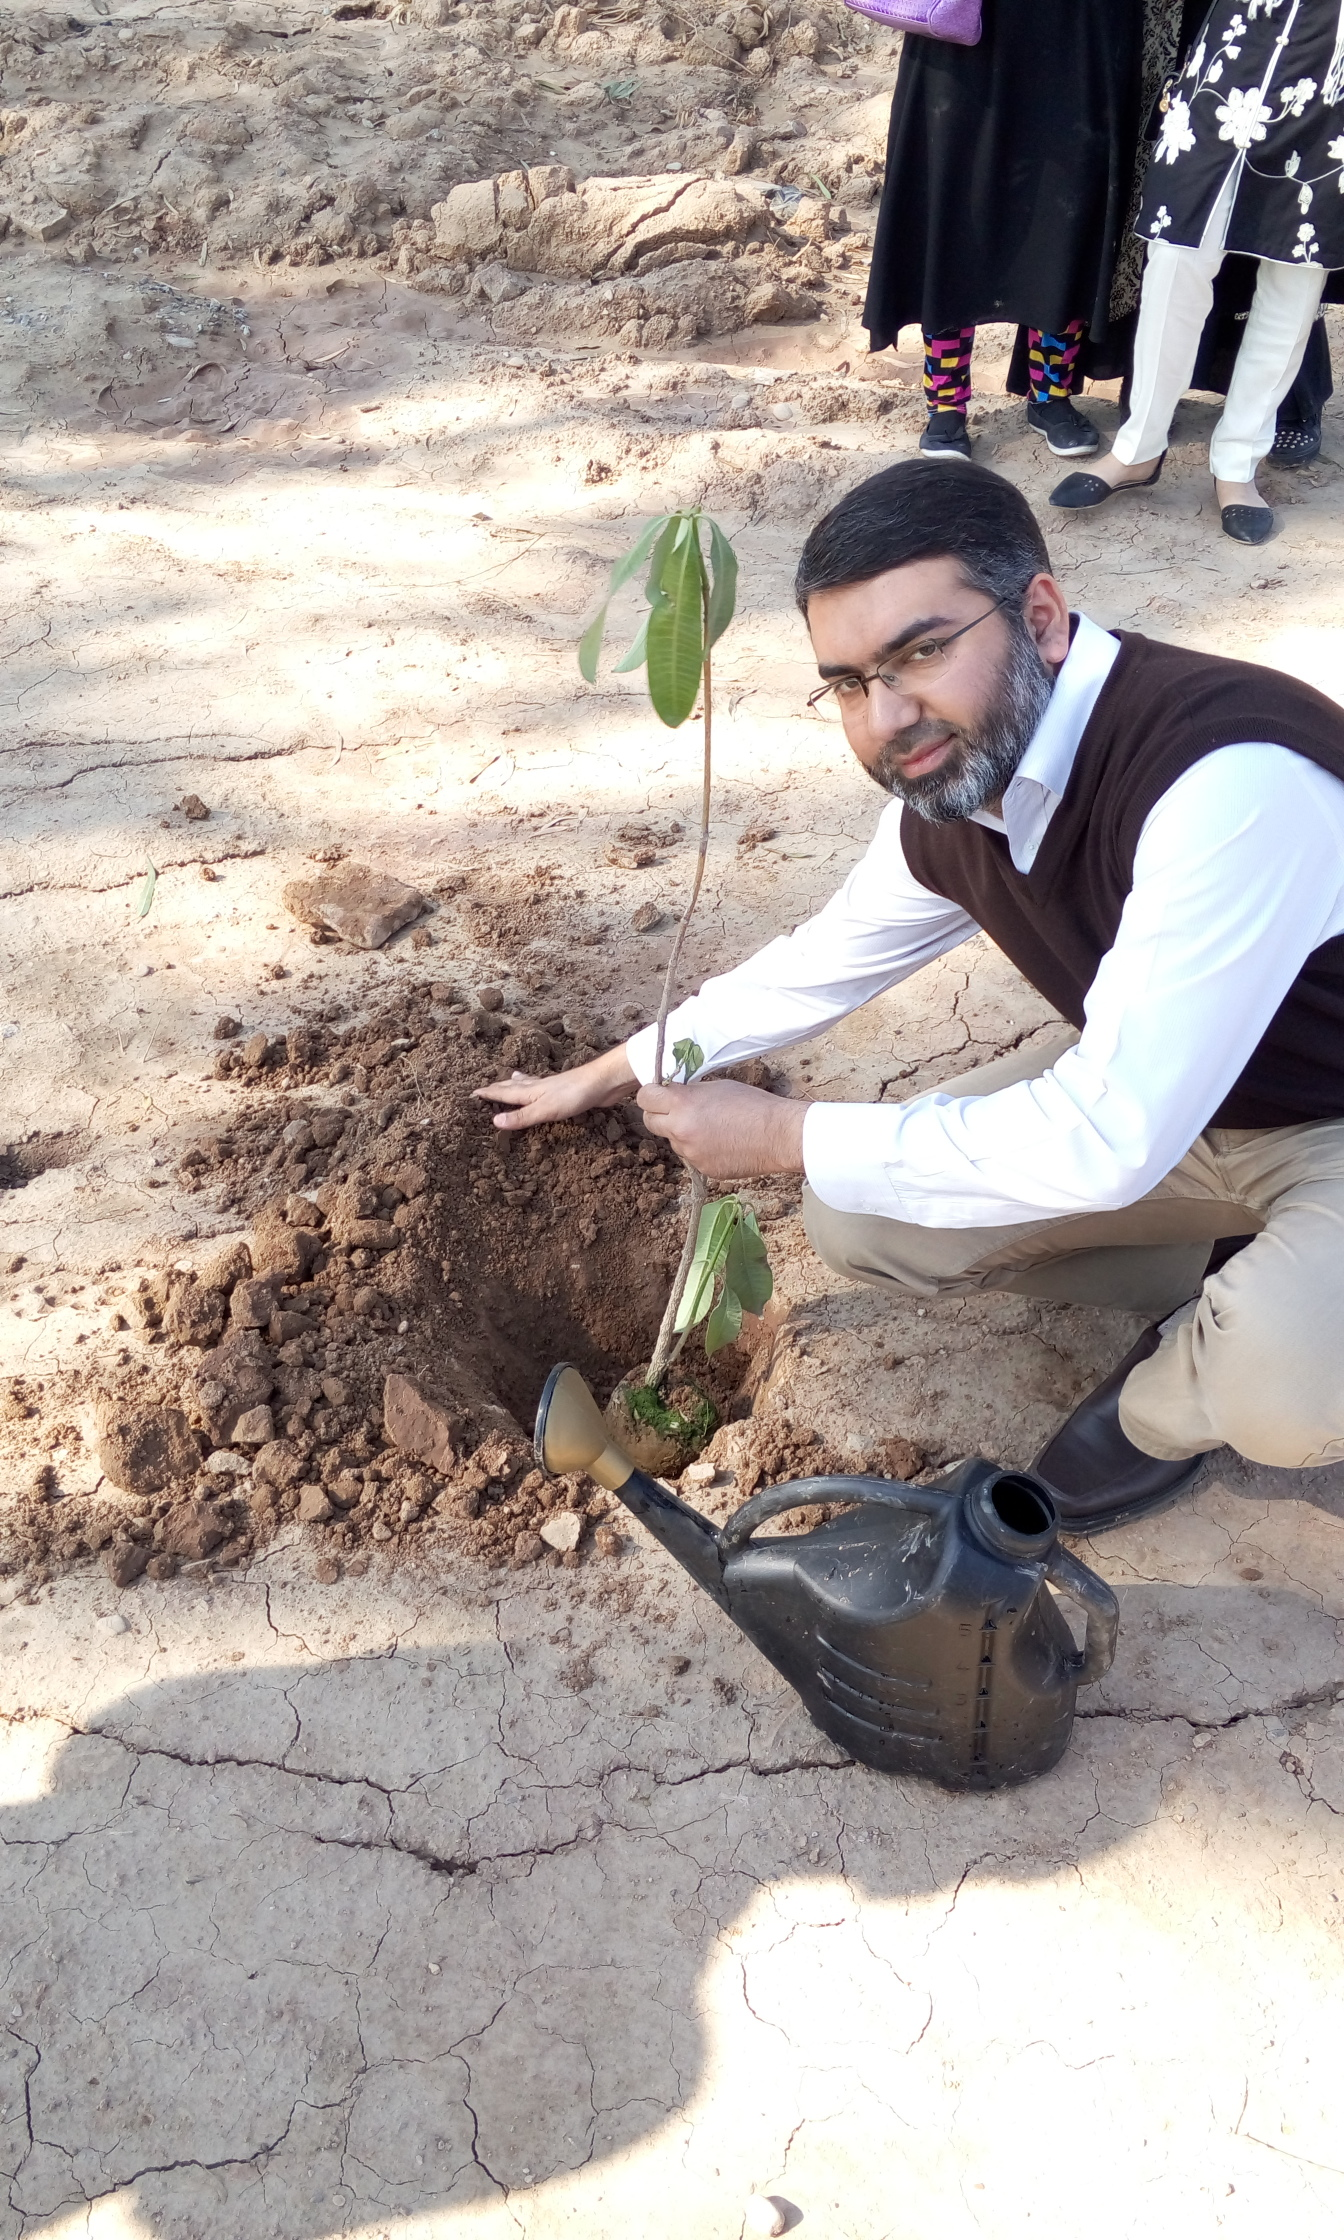 Plantation by Finance Director M. Ahmad Zafar